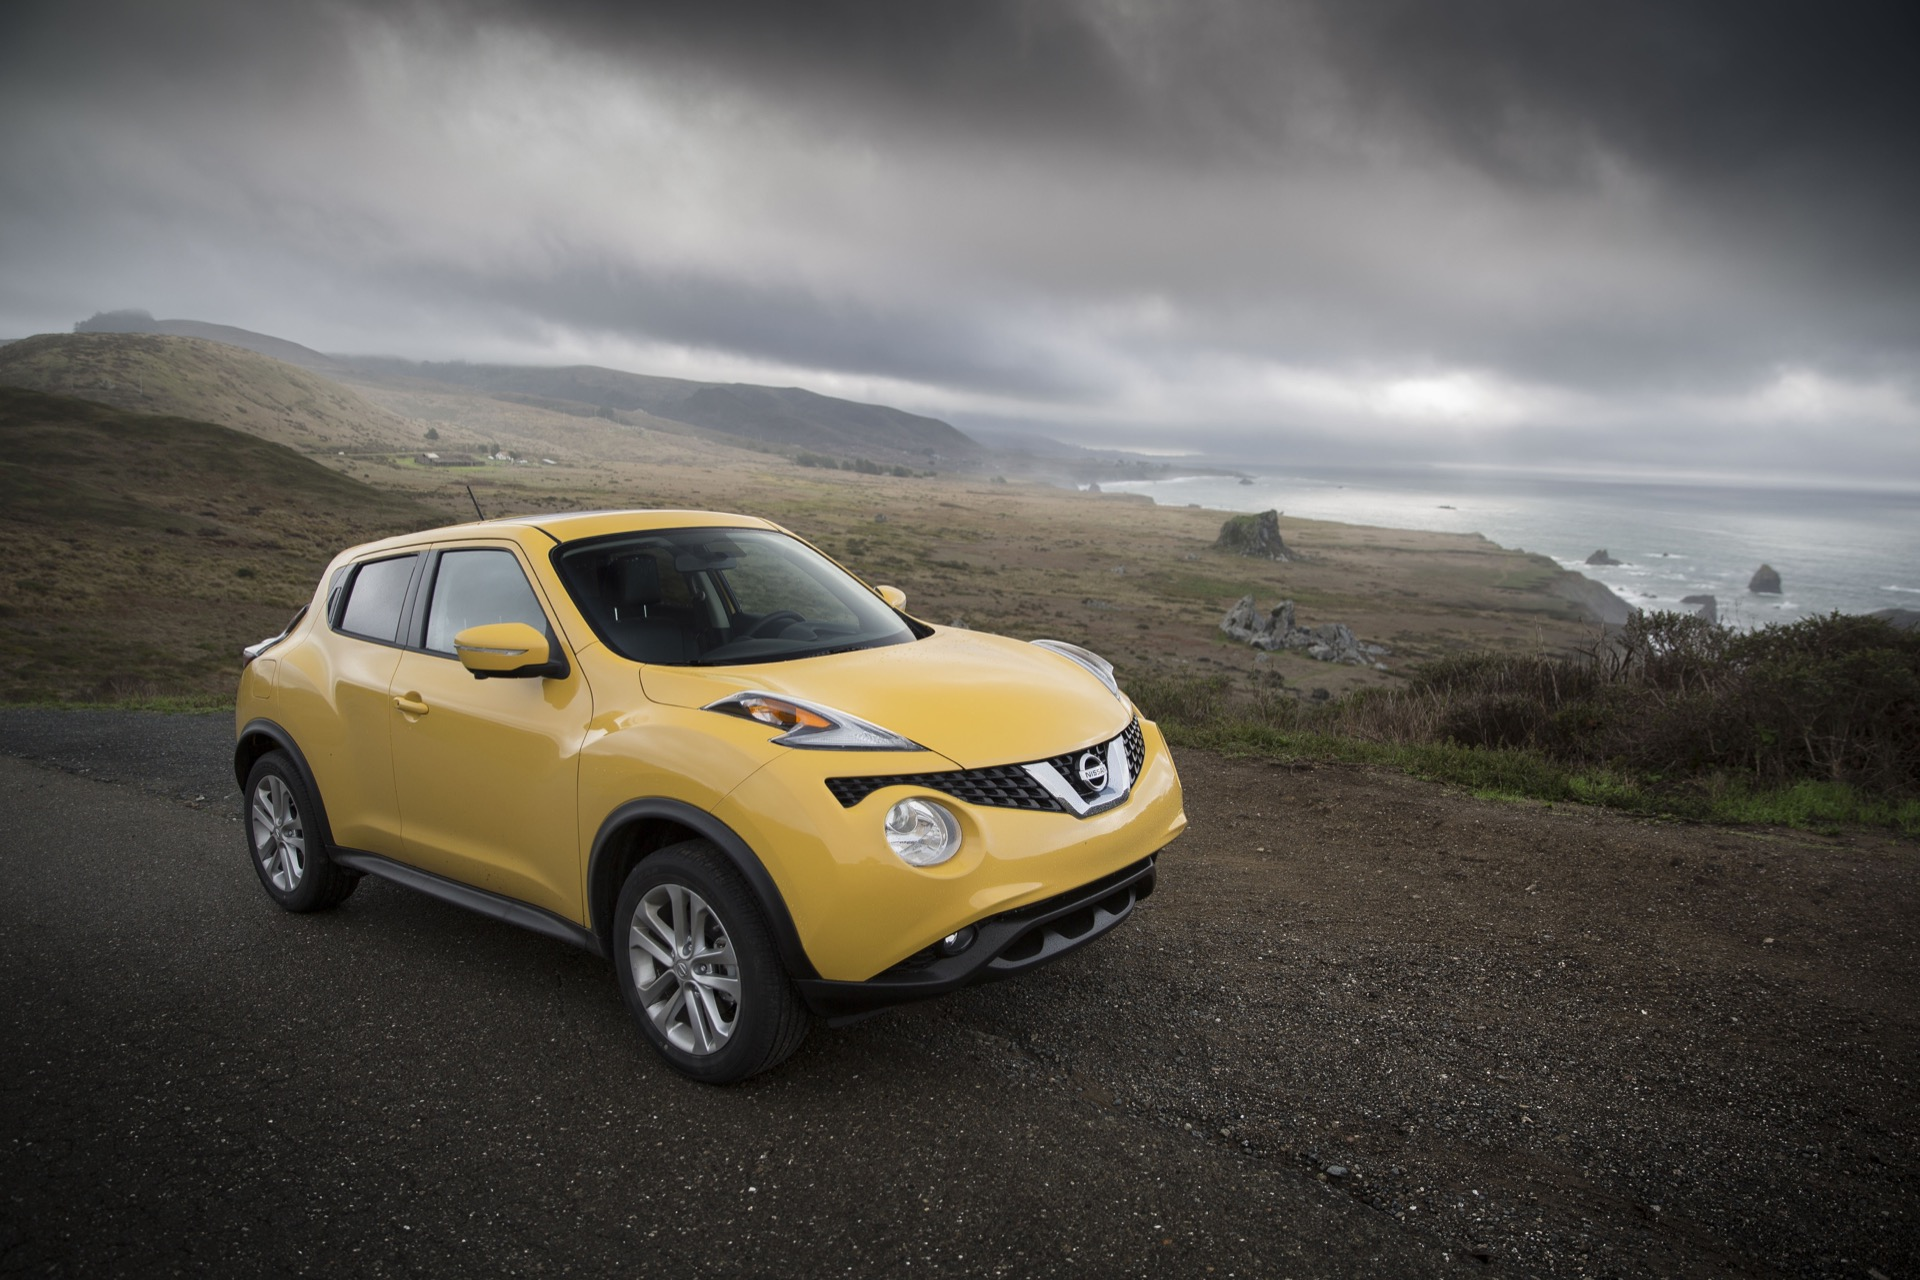 2016 nissan juke quality review the car connection for Neuer nissan juke 2016